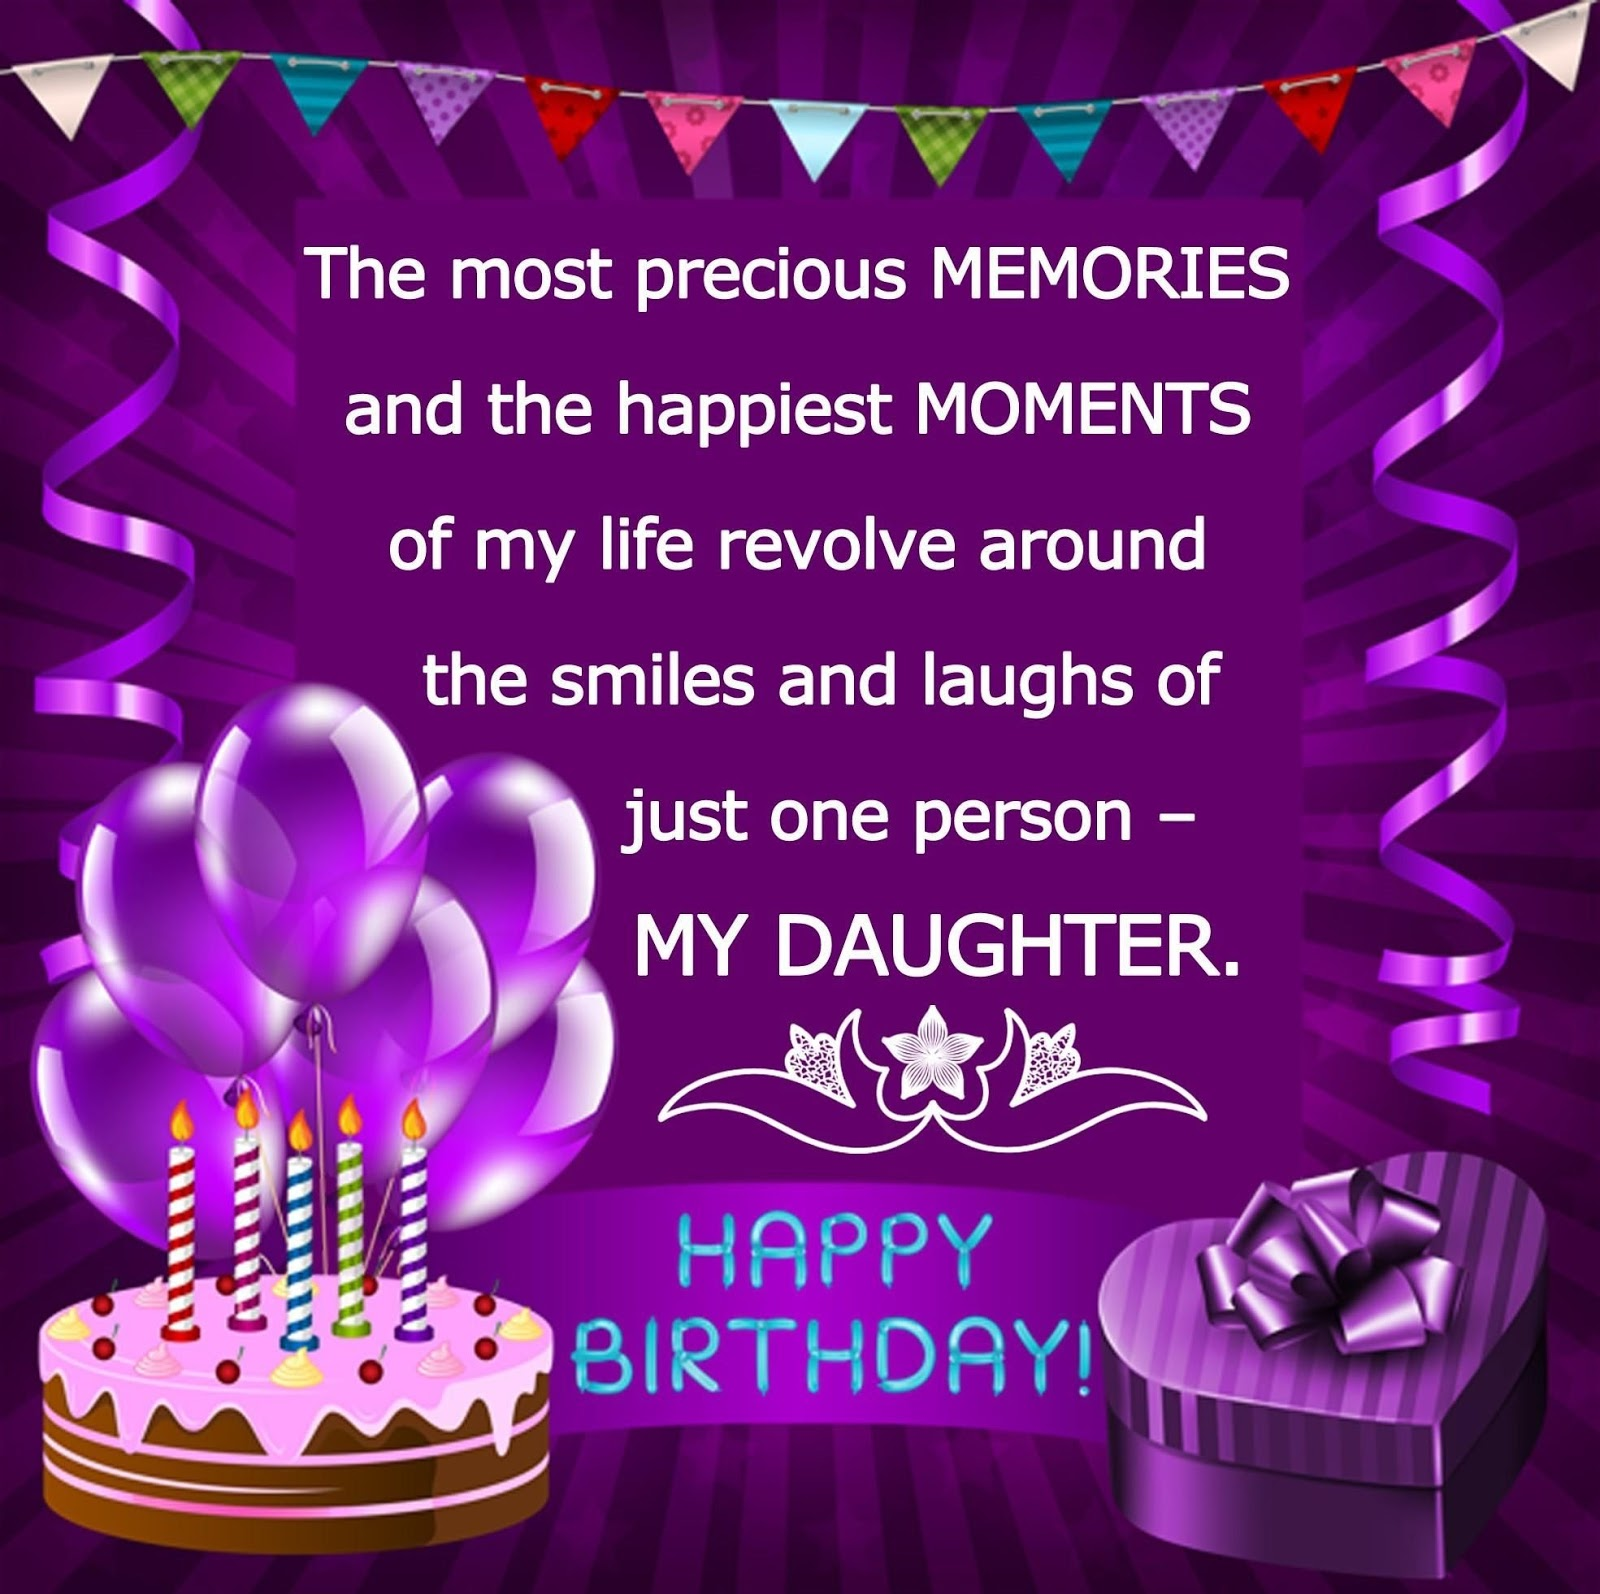 Happy Birthday To My Son Images And Quotes: ImagesList.com: Happy Birthday Daughter 2